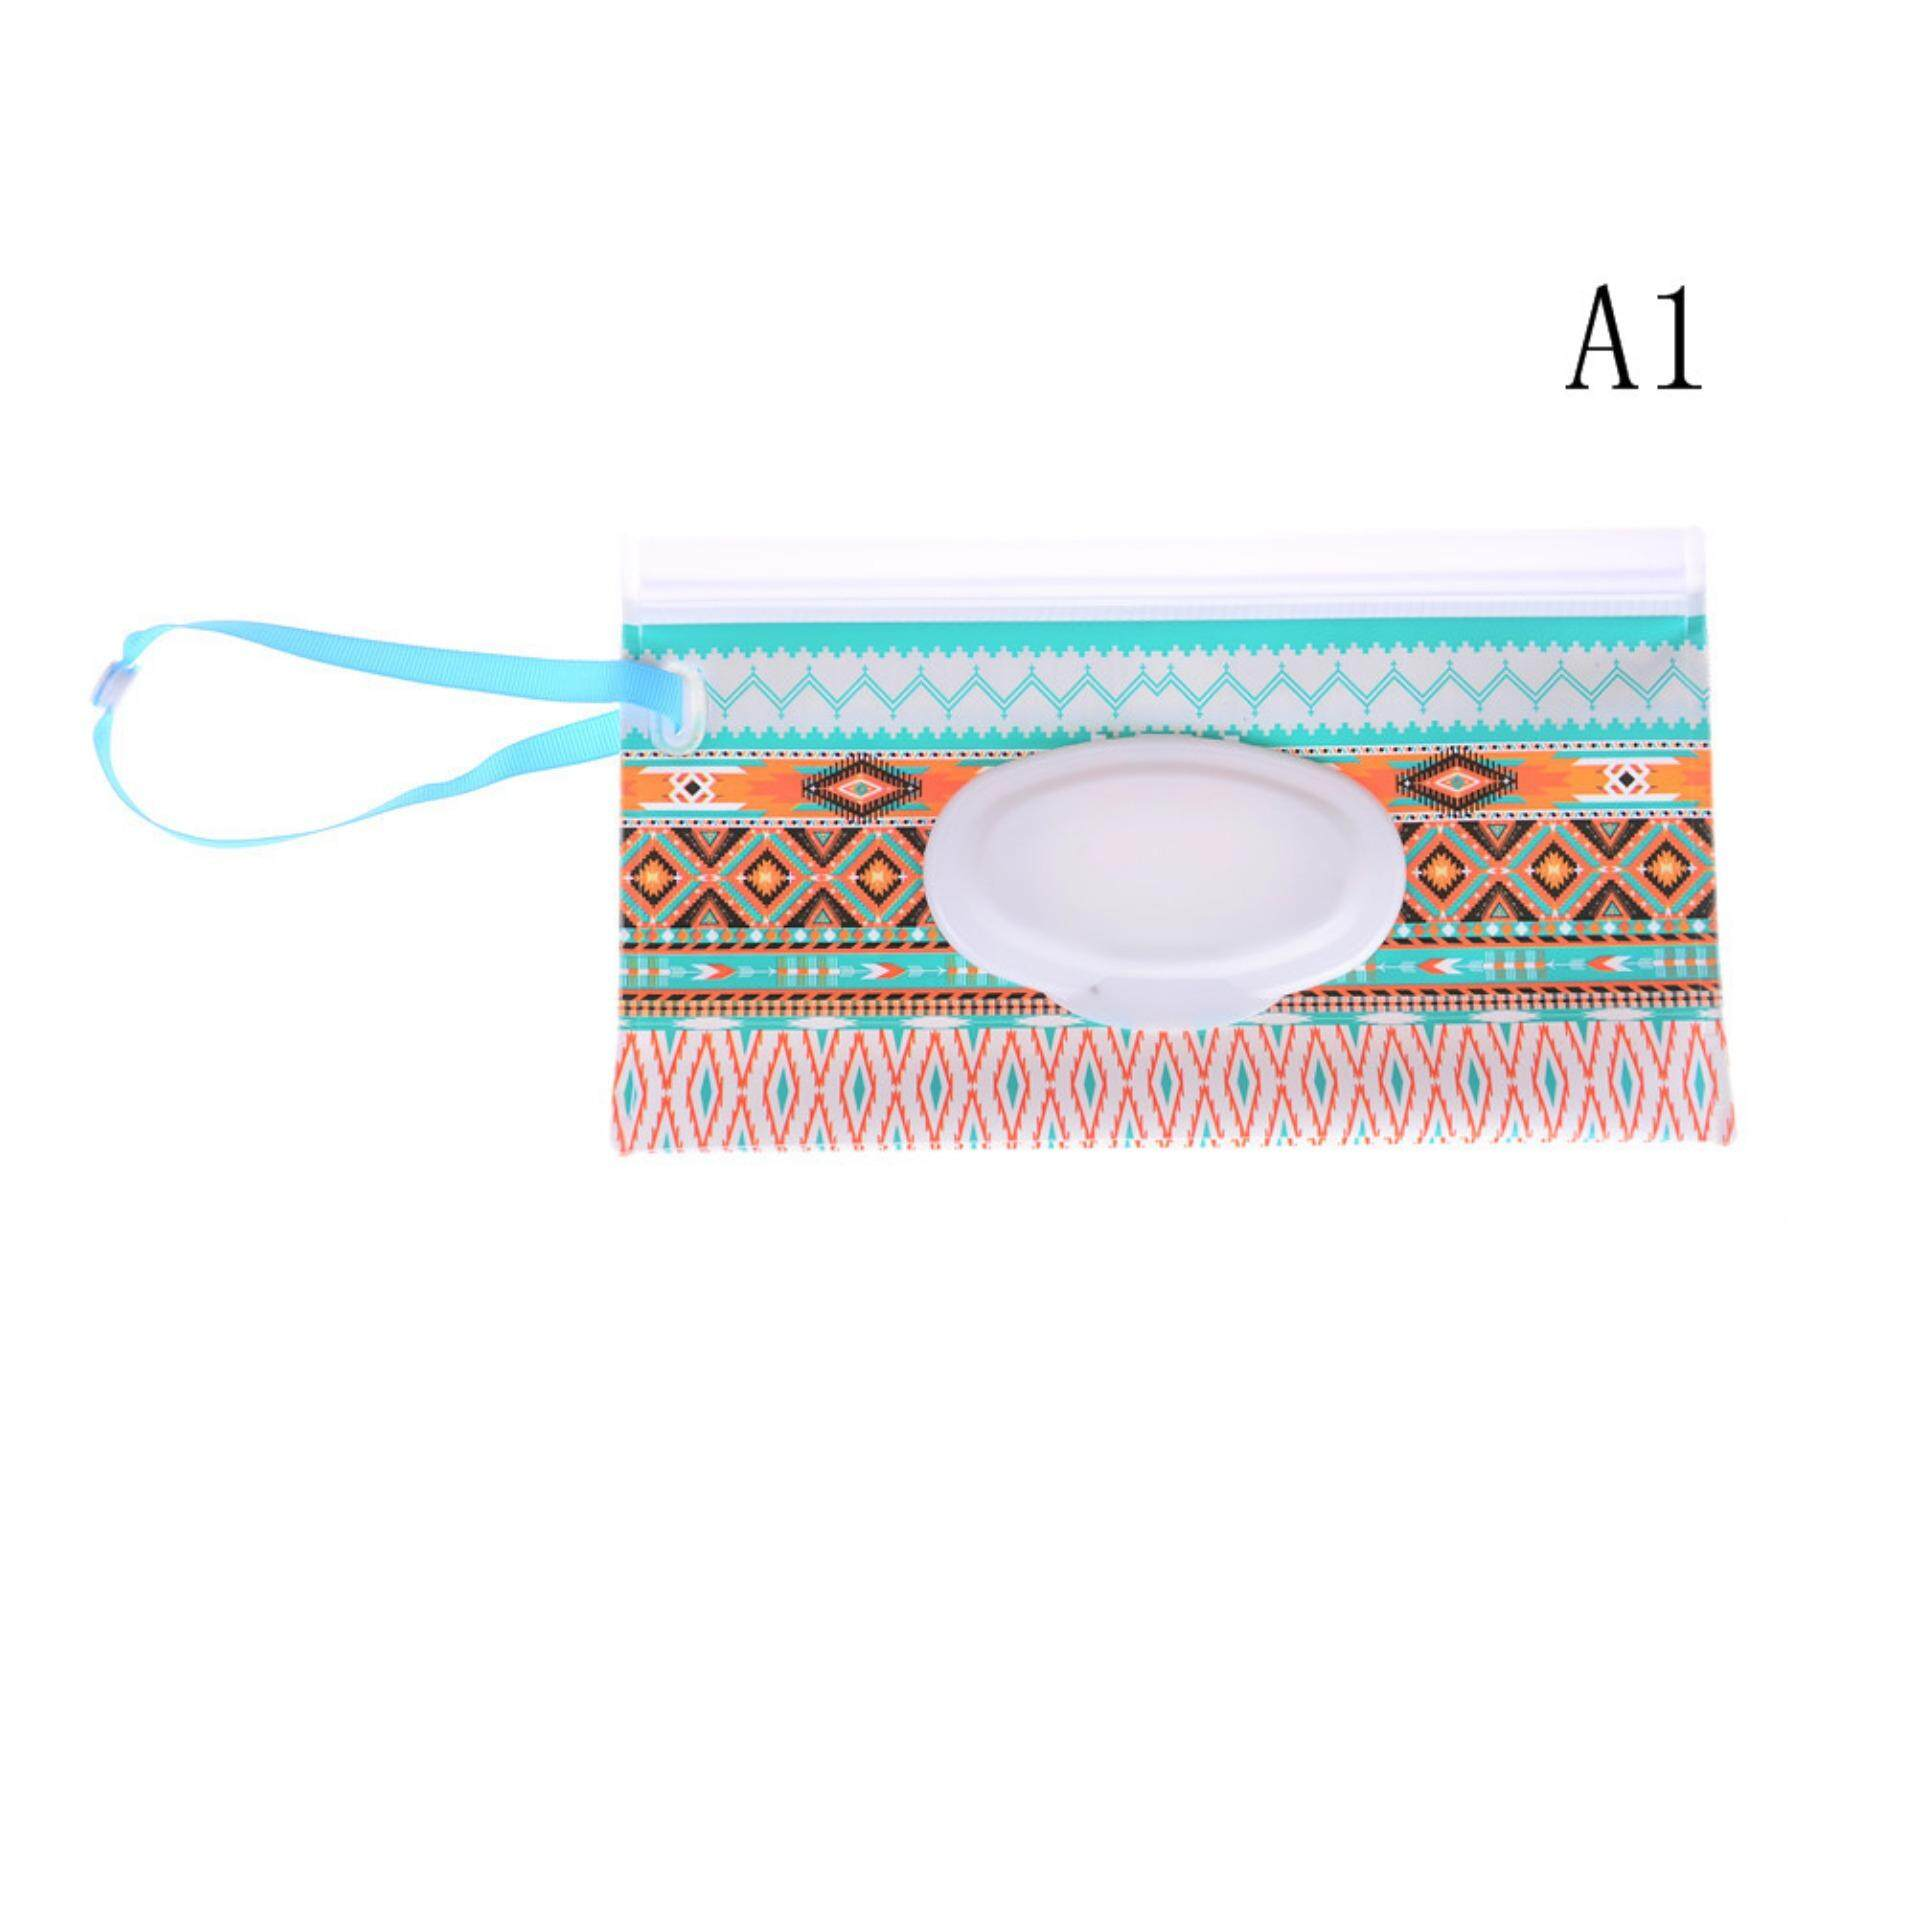 Imported From Abroad Eco-friendly Wet Wipes Bag Clamshell Cosmetic Pouch Clutch And Clean Easy-carry Snap-strap Wipes Container Wipes Carrying Case Available In Various Designs And Specifications For Your Selection Changing Pads & Covers Baby Care